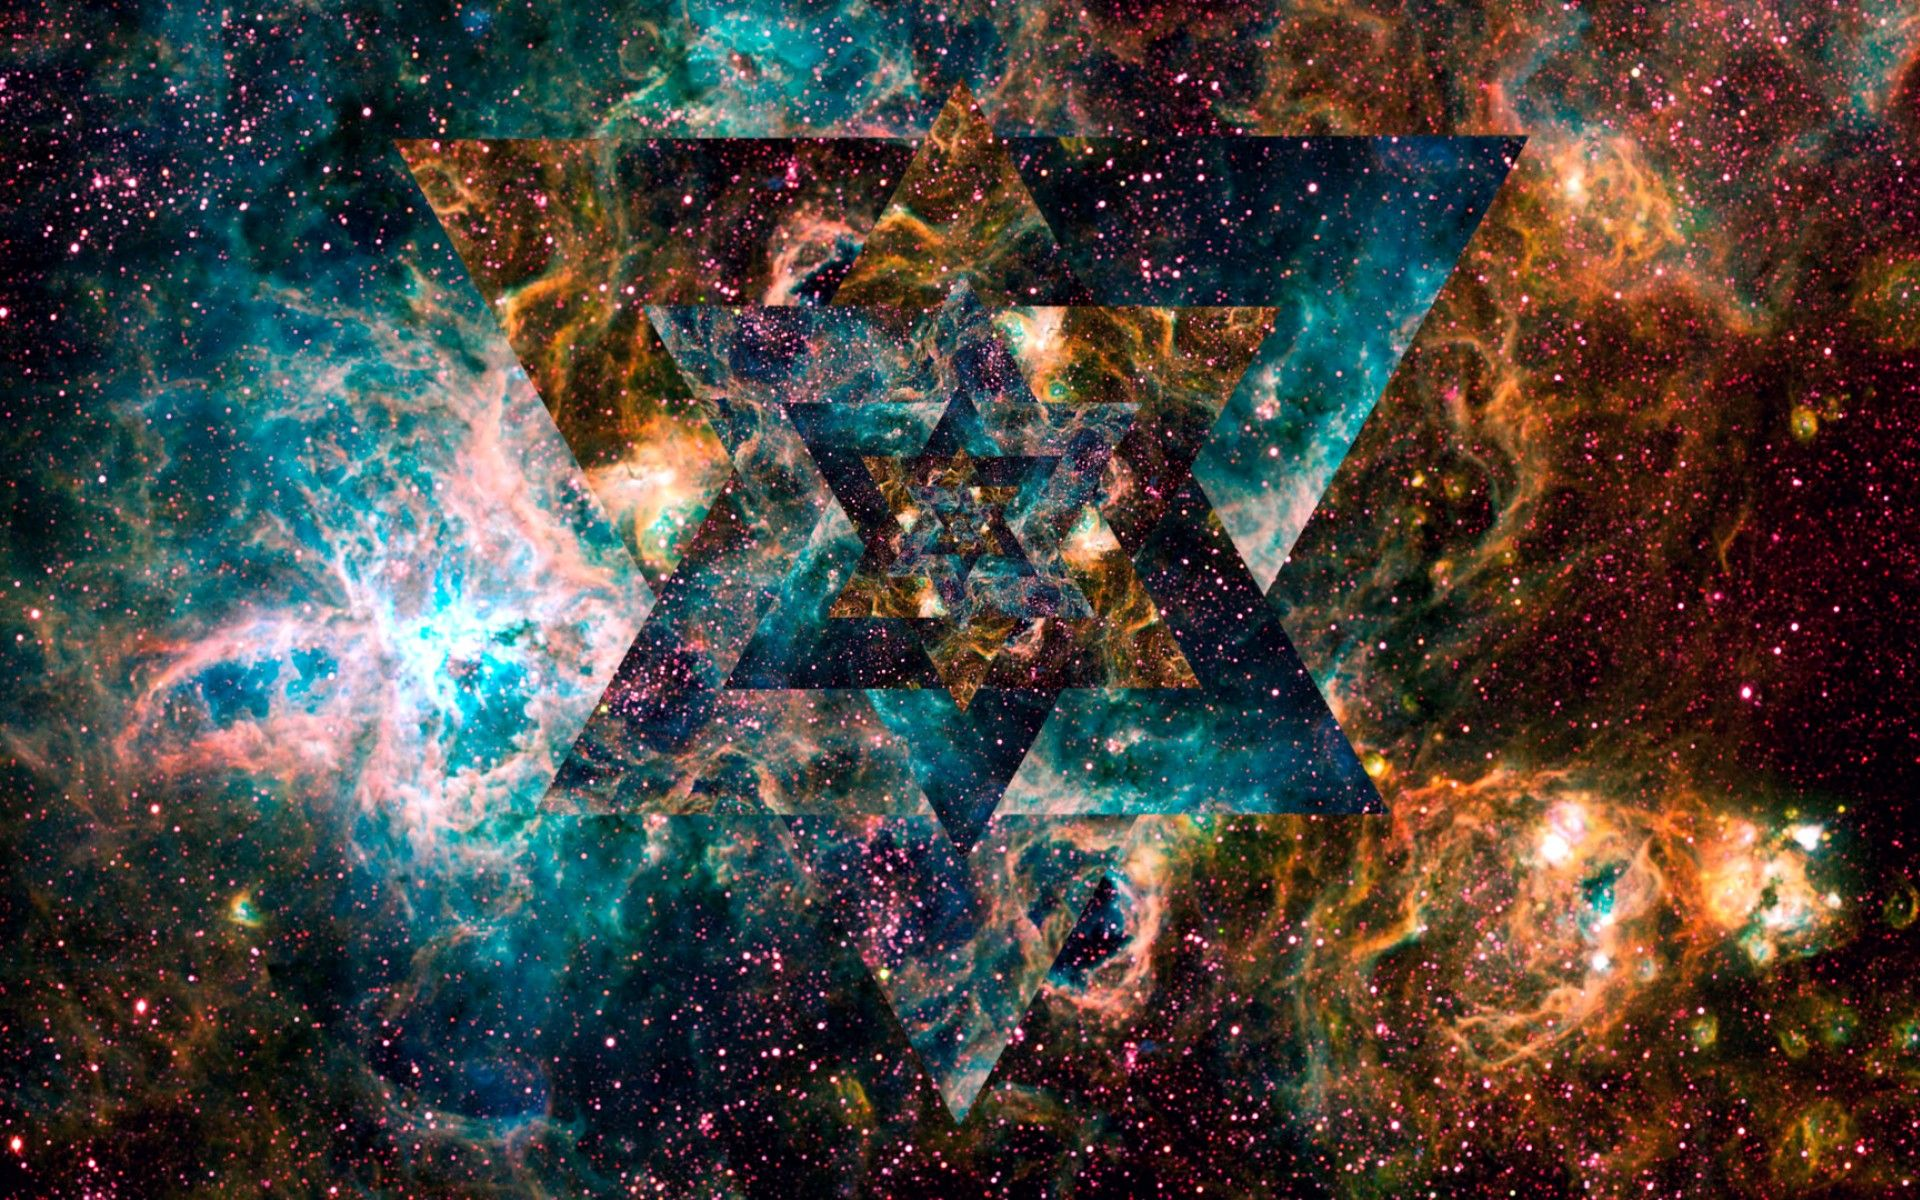 Trippy Space Backgrounds Google Search Trippy Iphone Wallpaper Trippy Wallpaper Trippy Backgrounds